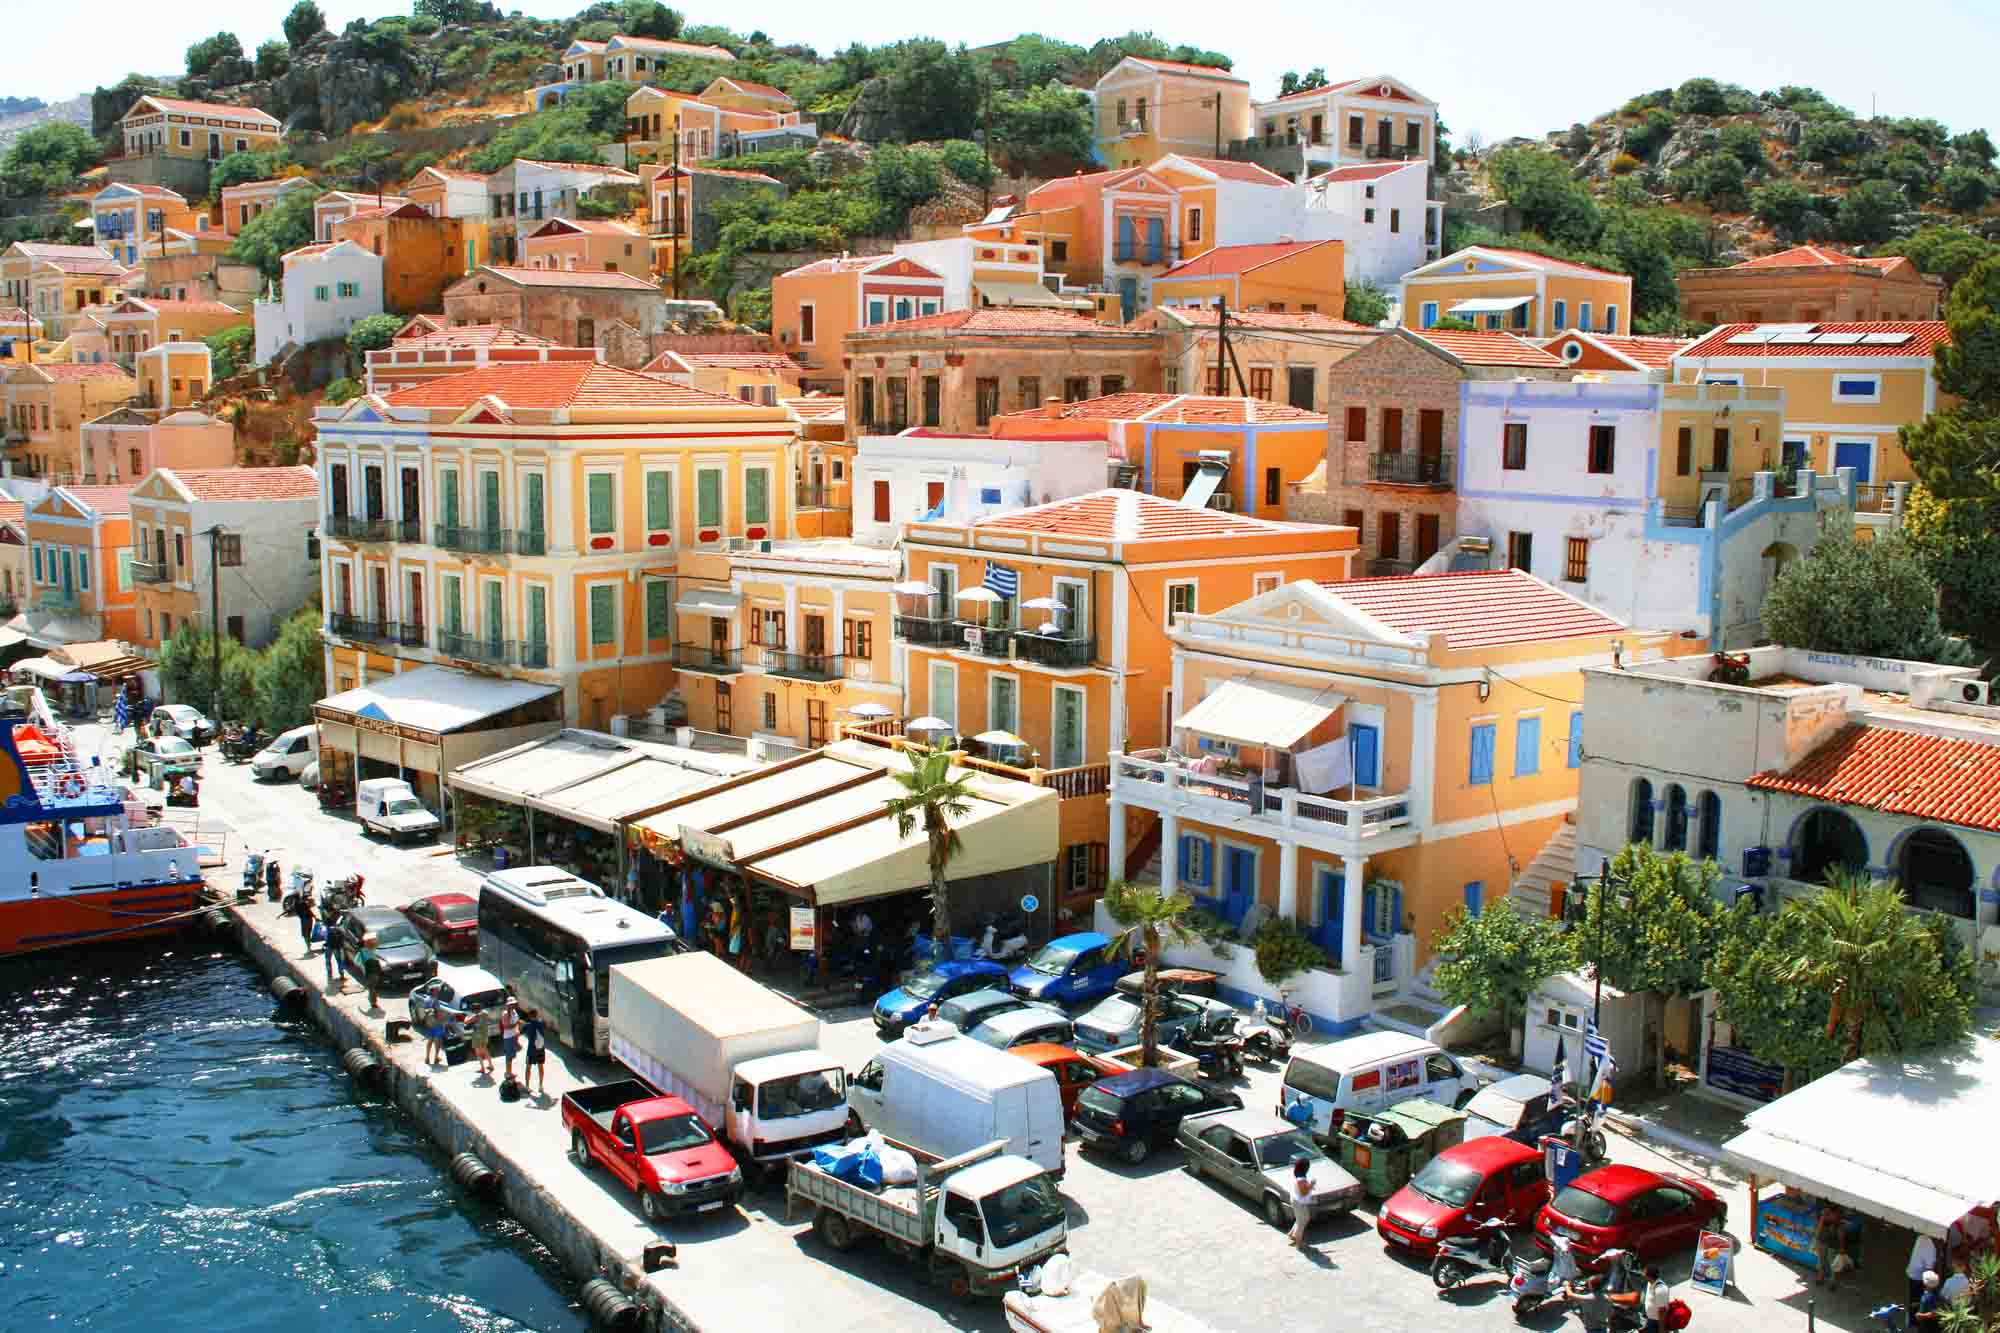 Colorful houses in Island Symi Greece